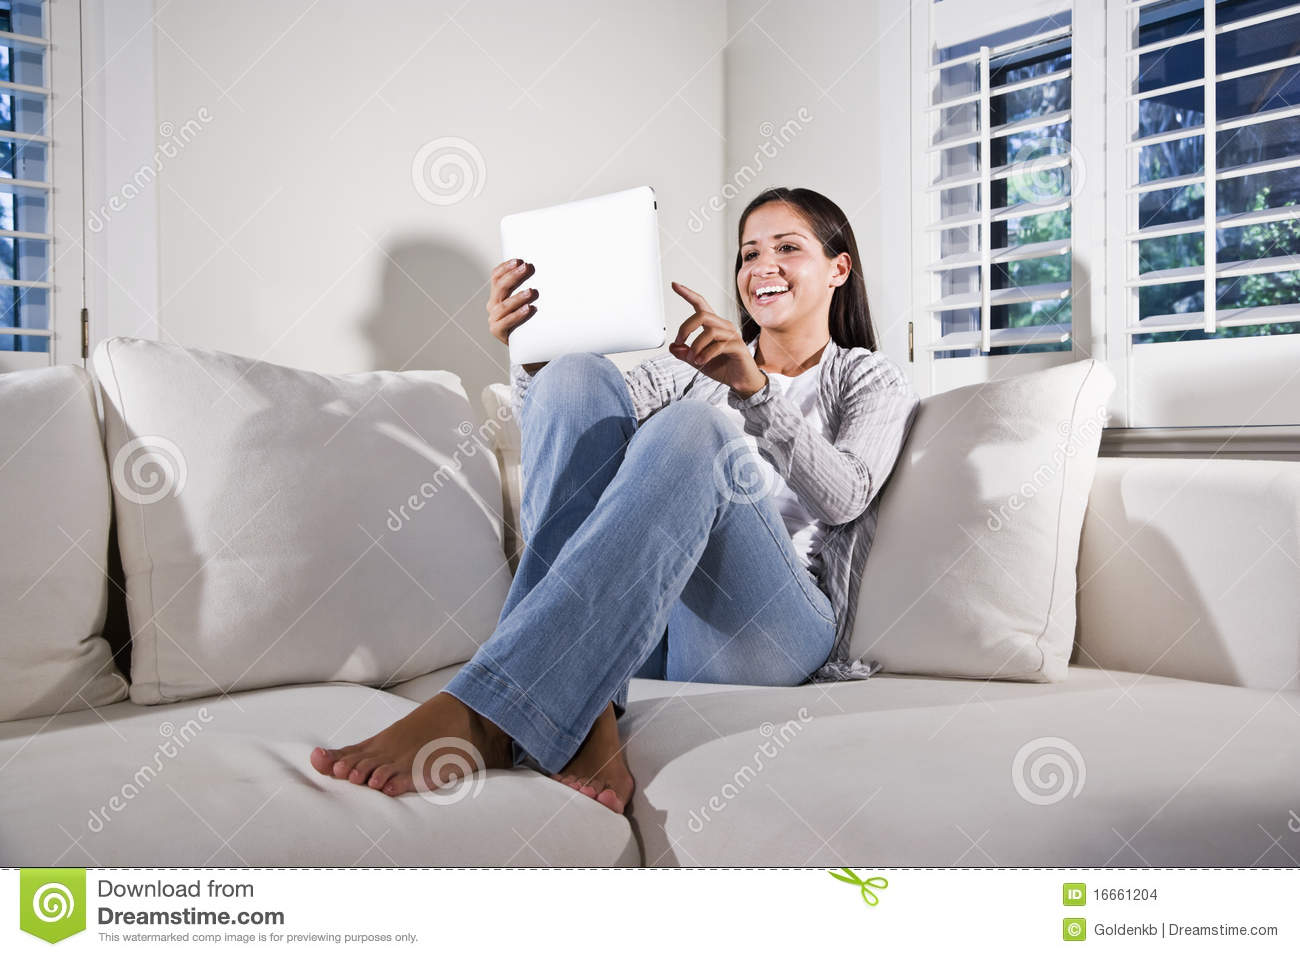 Hispanic Woman Using Tablet Computer On Couch Stock Images  Image 16661204